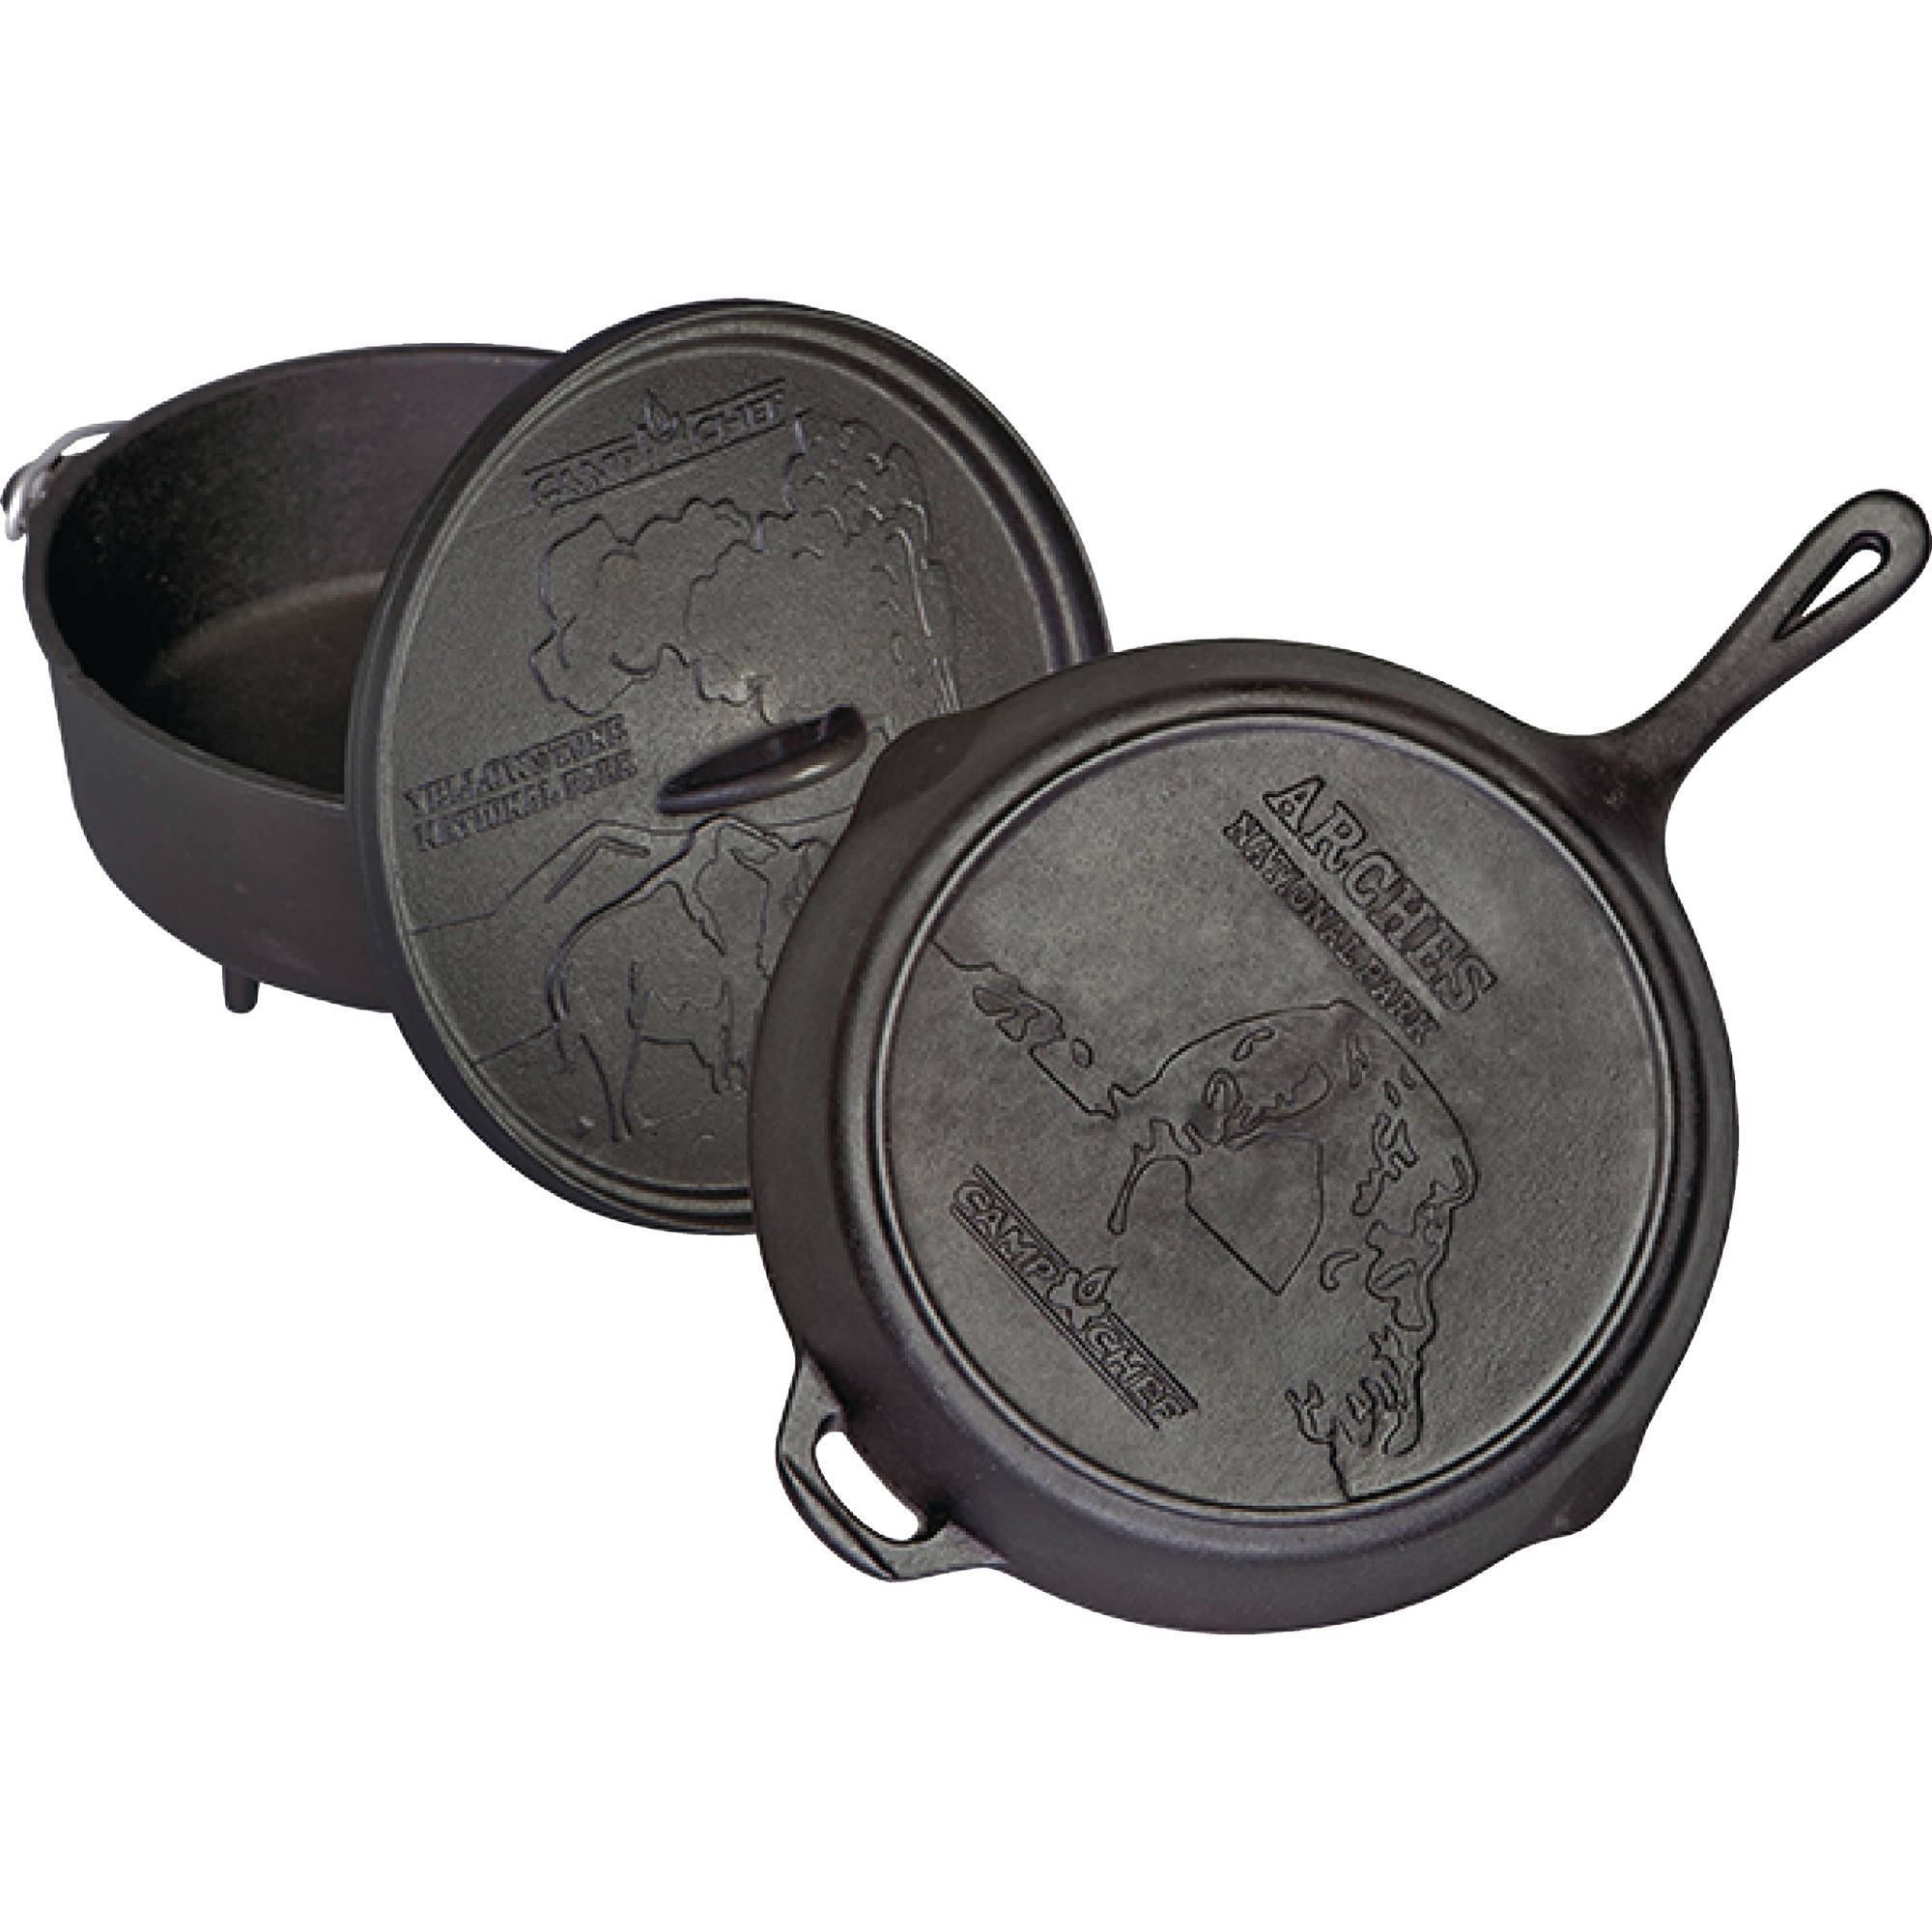 "Camp Chef CBOX100 National Parks 12"" Dutch Oven, 12"" Iron Skillet and Interchangeable Lid Cast Iron Set"